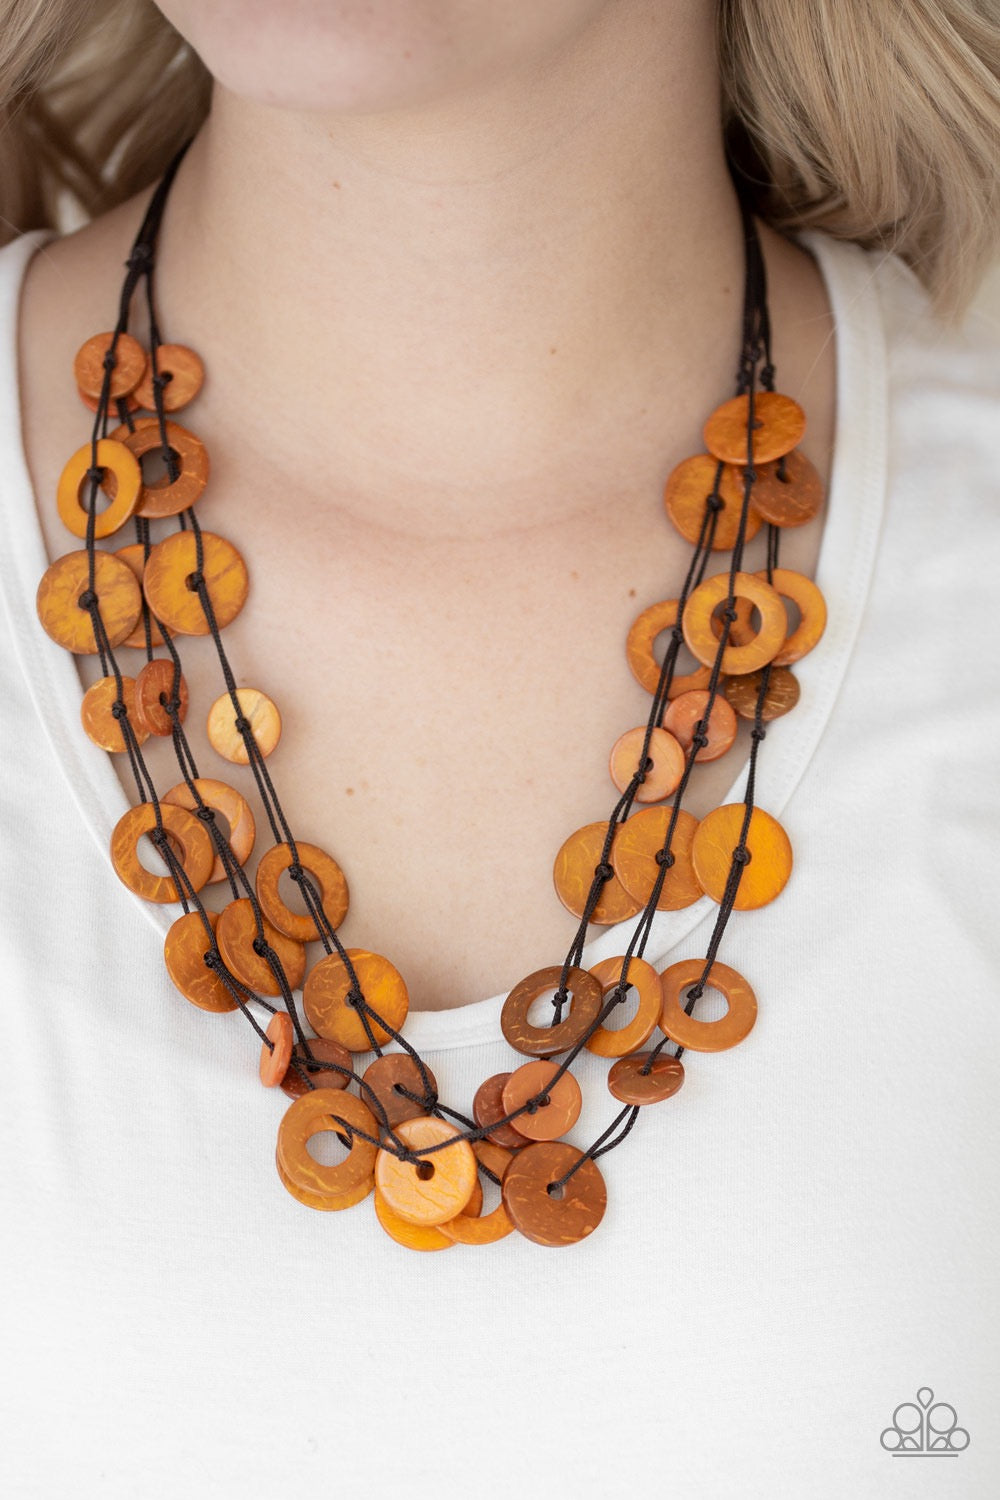 Paparazzi Wonderfully Walla Walla - Orange Necklace